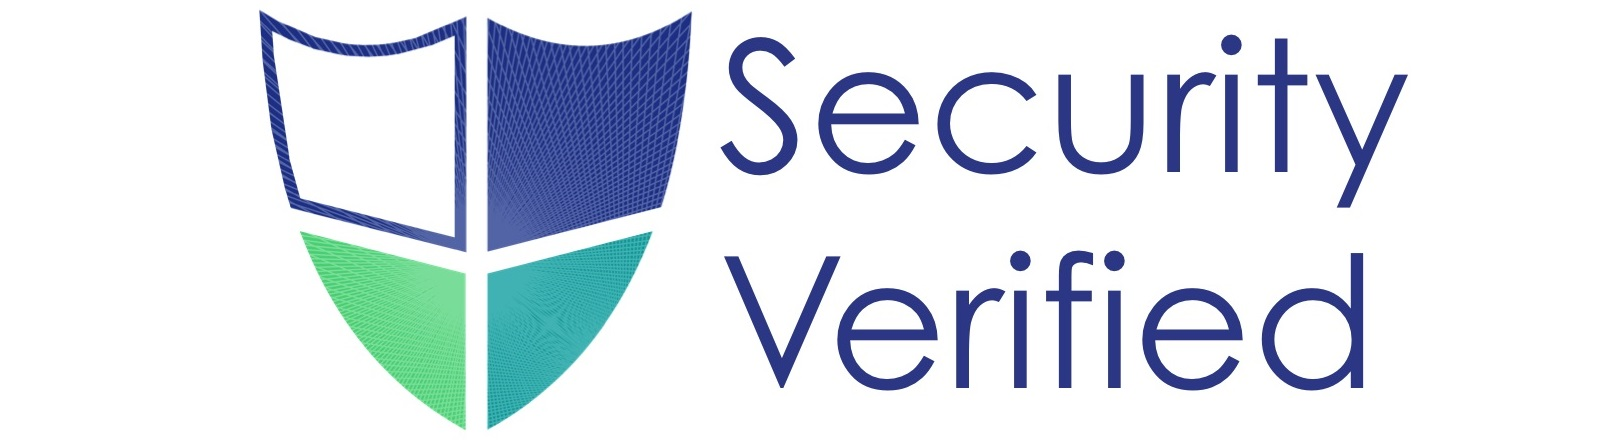 Axon is 'Security Verified'